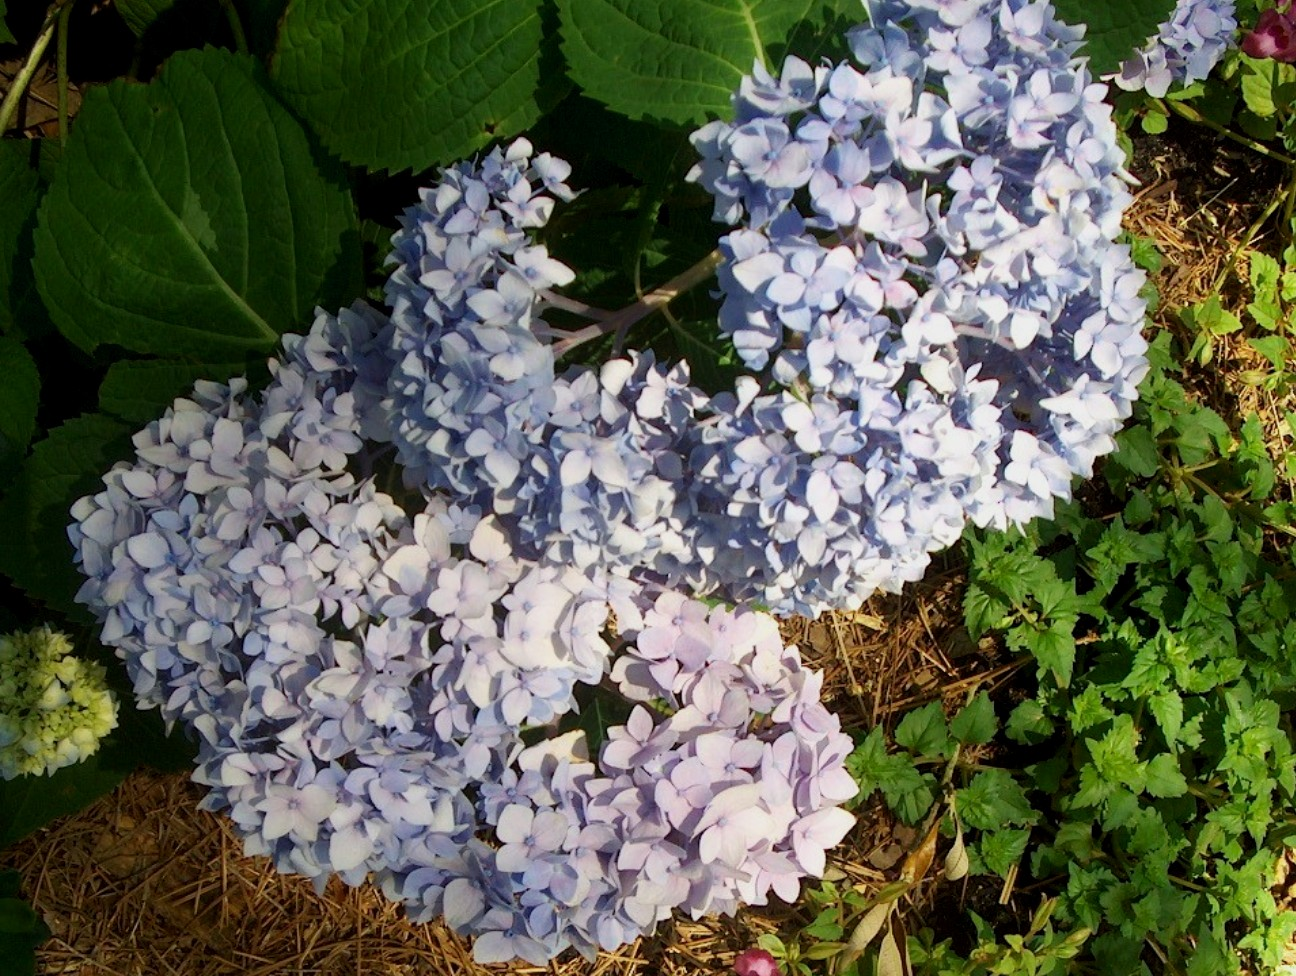 Hydrangea macrophylla 'Endless Summer'   / Hydrangea macrophylla 'Endless Summer'